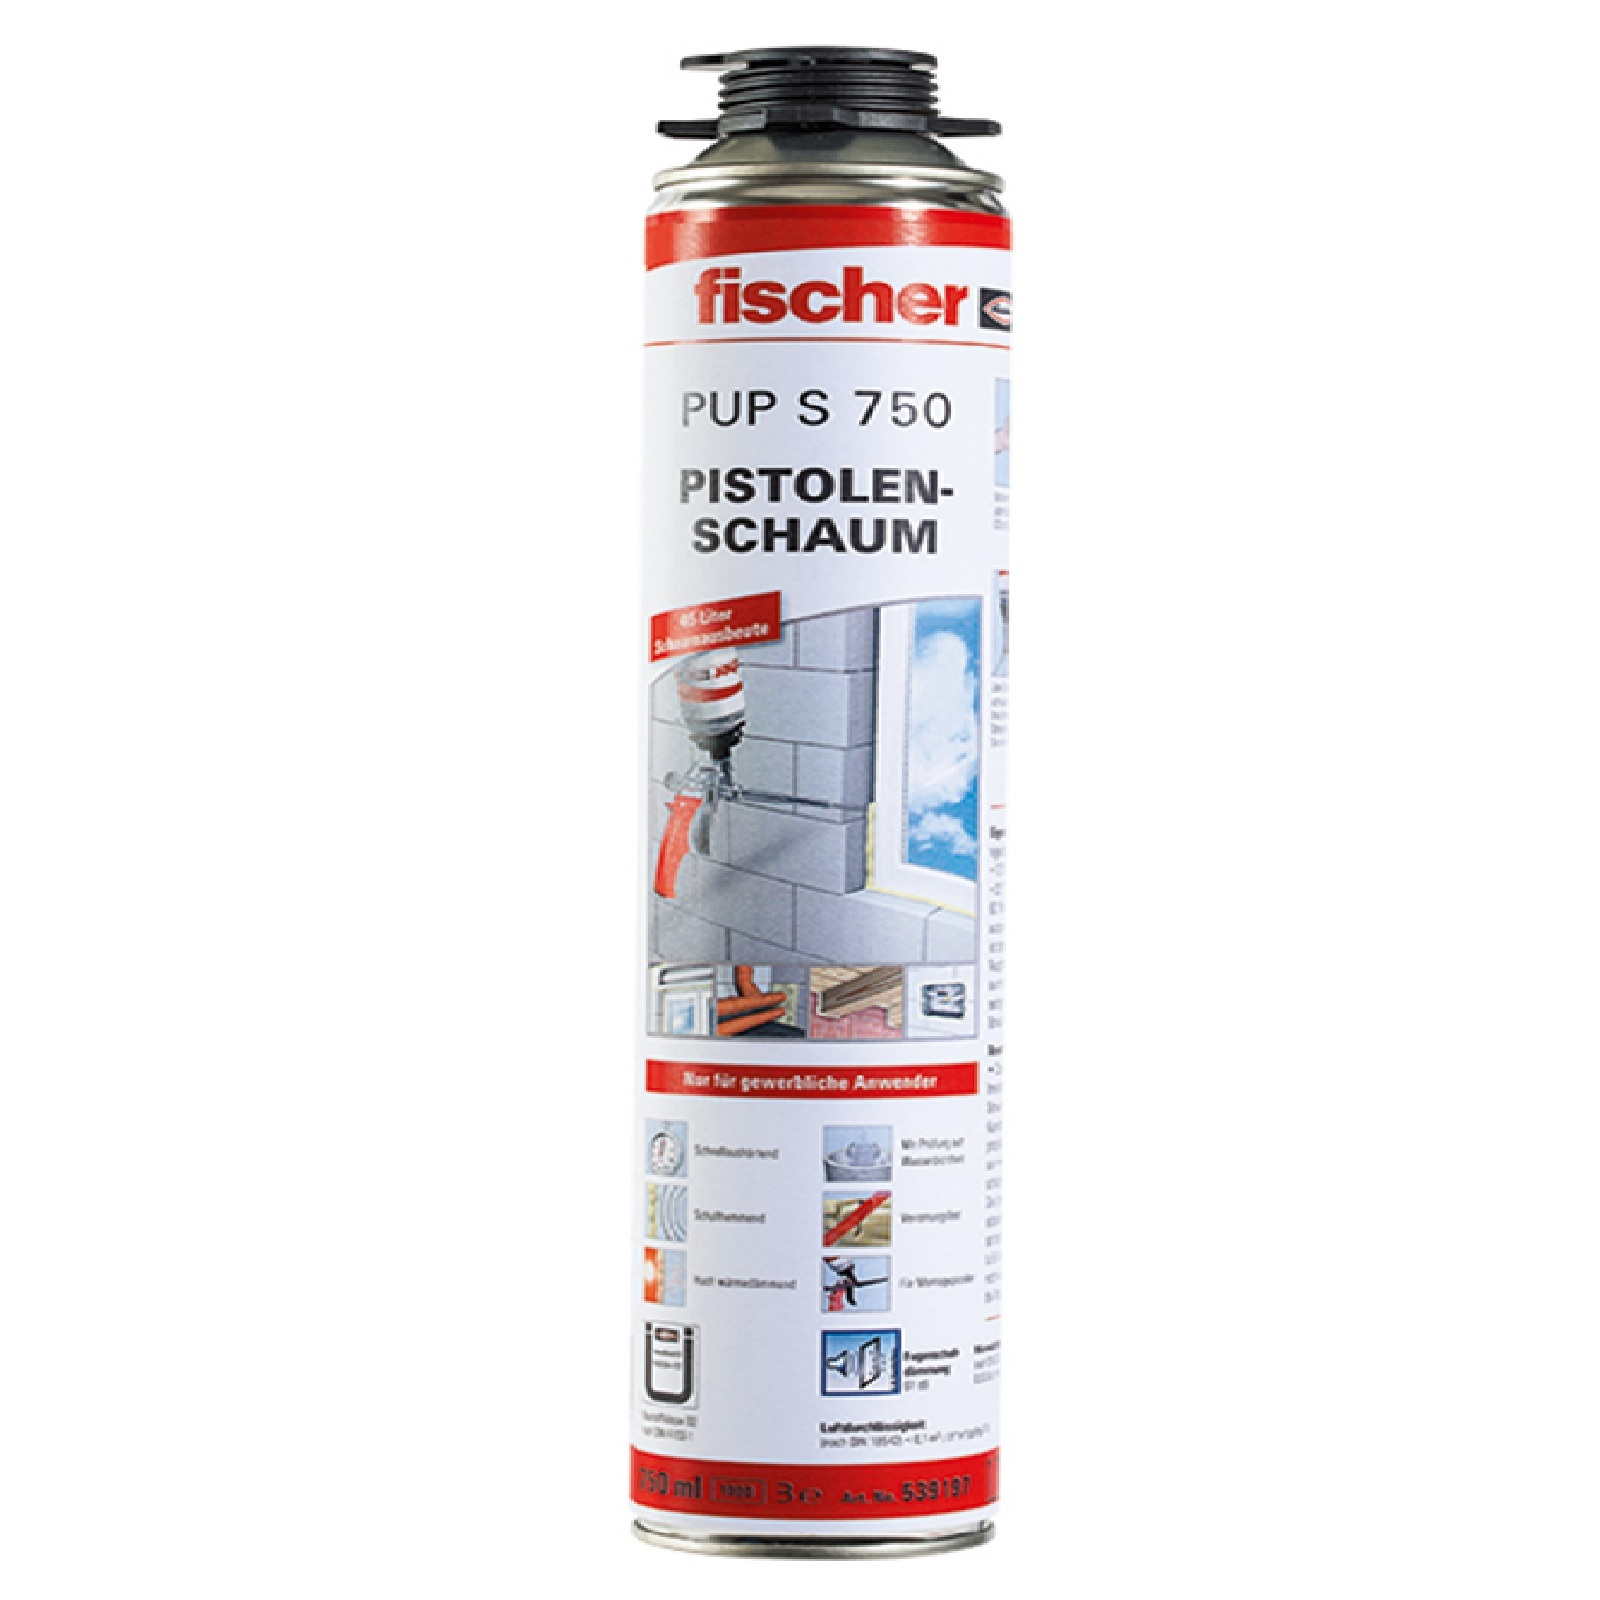 fischer pup s 750 b2 pistolenschaum bauschaum pu schaum f ll d mmschaum 750ml ebay. Black Bedroom Furniture Sets. Home Design Ideas